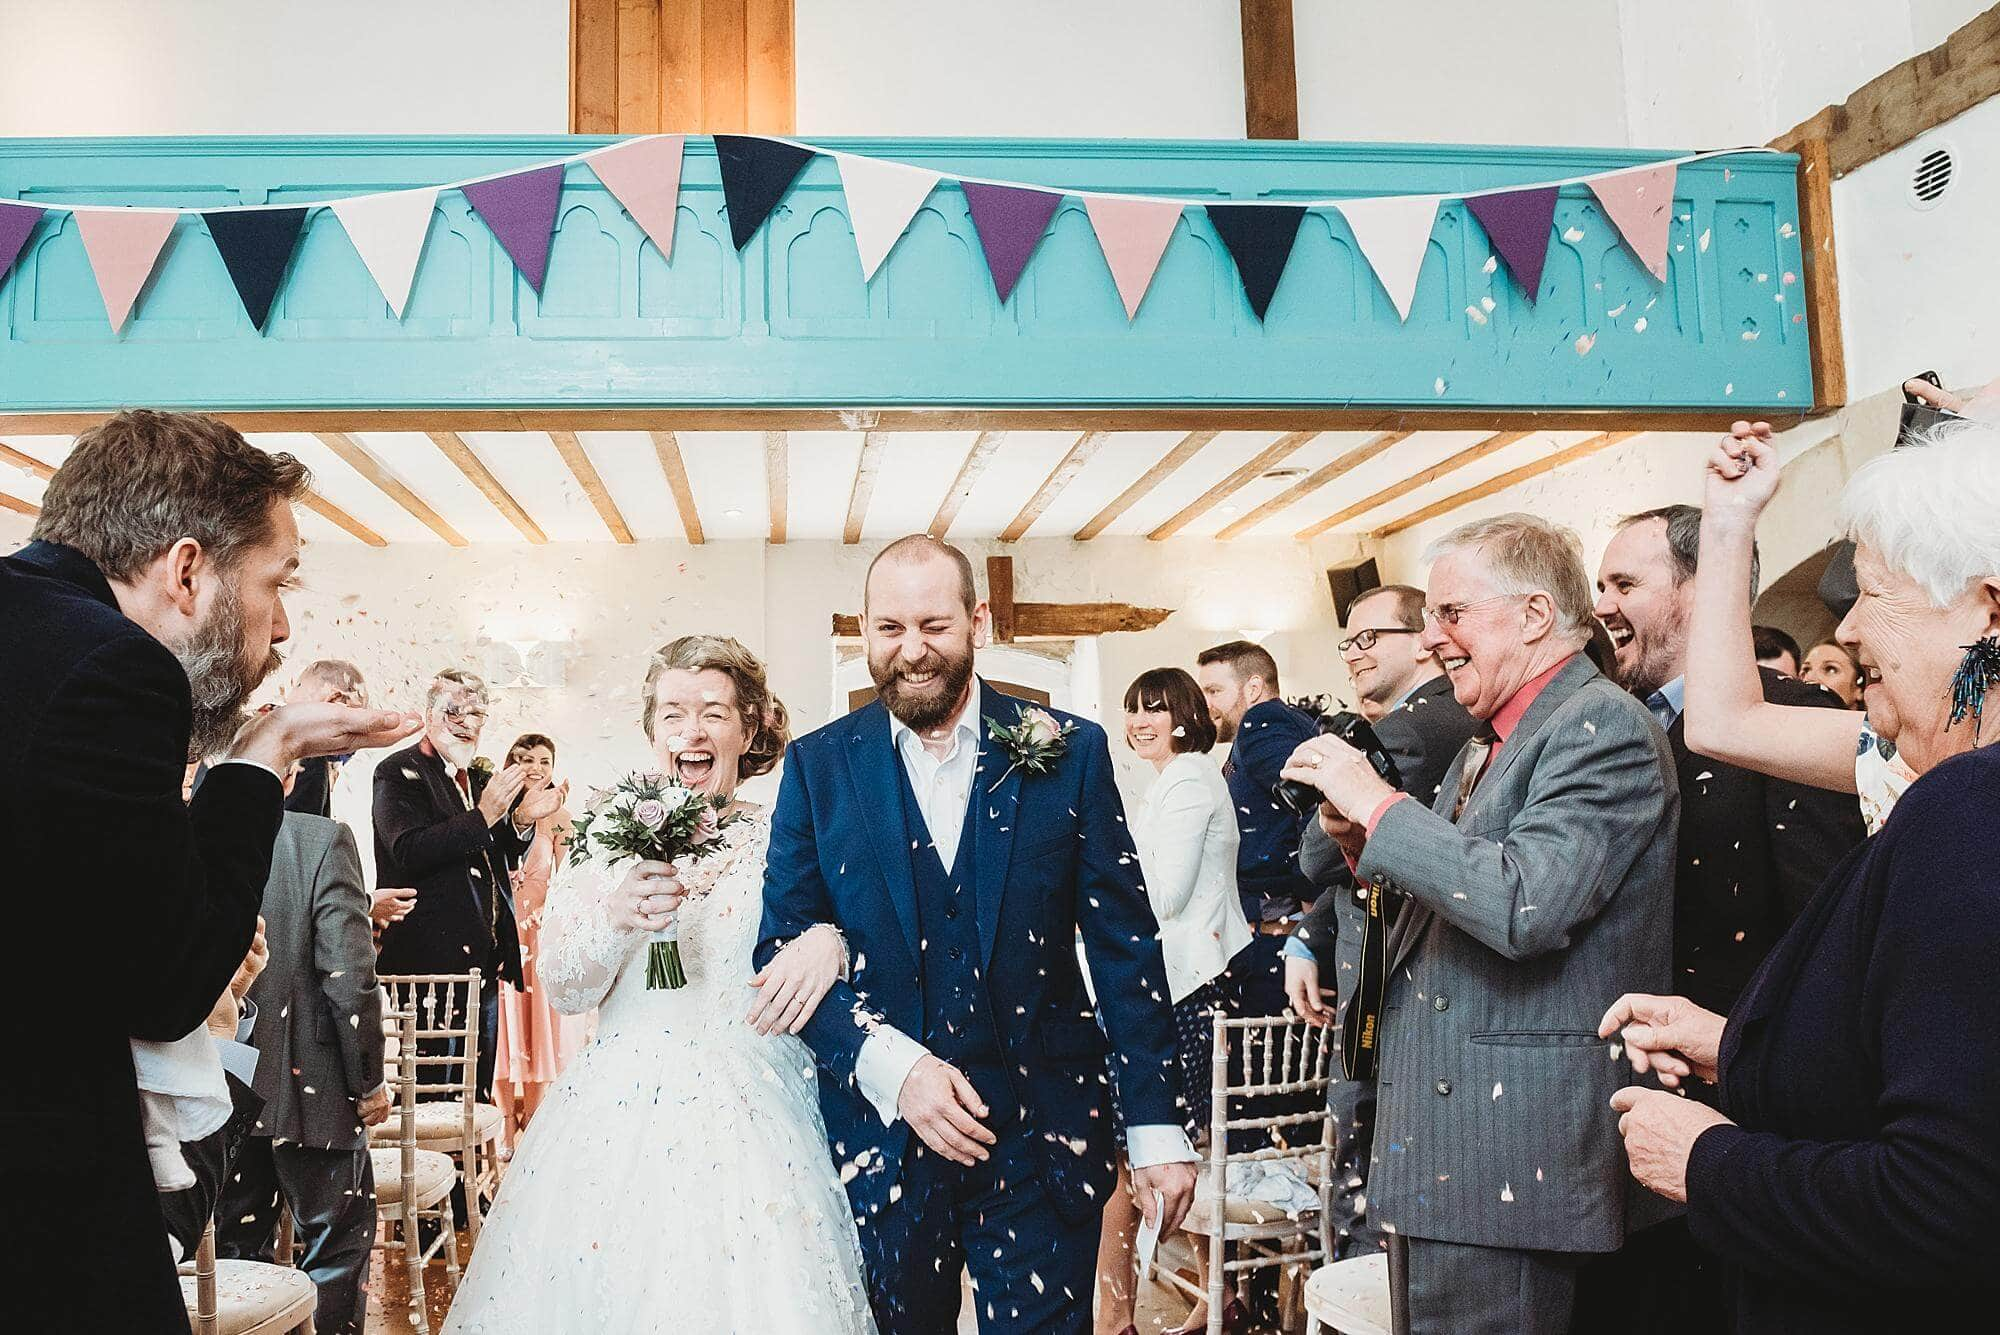 Guests throw confetti over the bride and groom as they walk down the aisle indoor Priston Mill Water mill